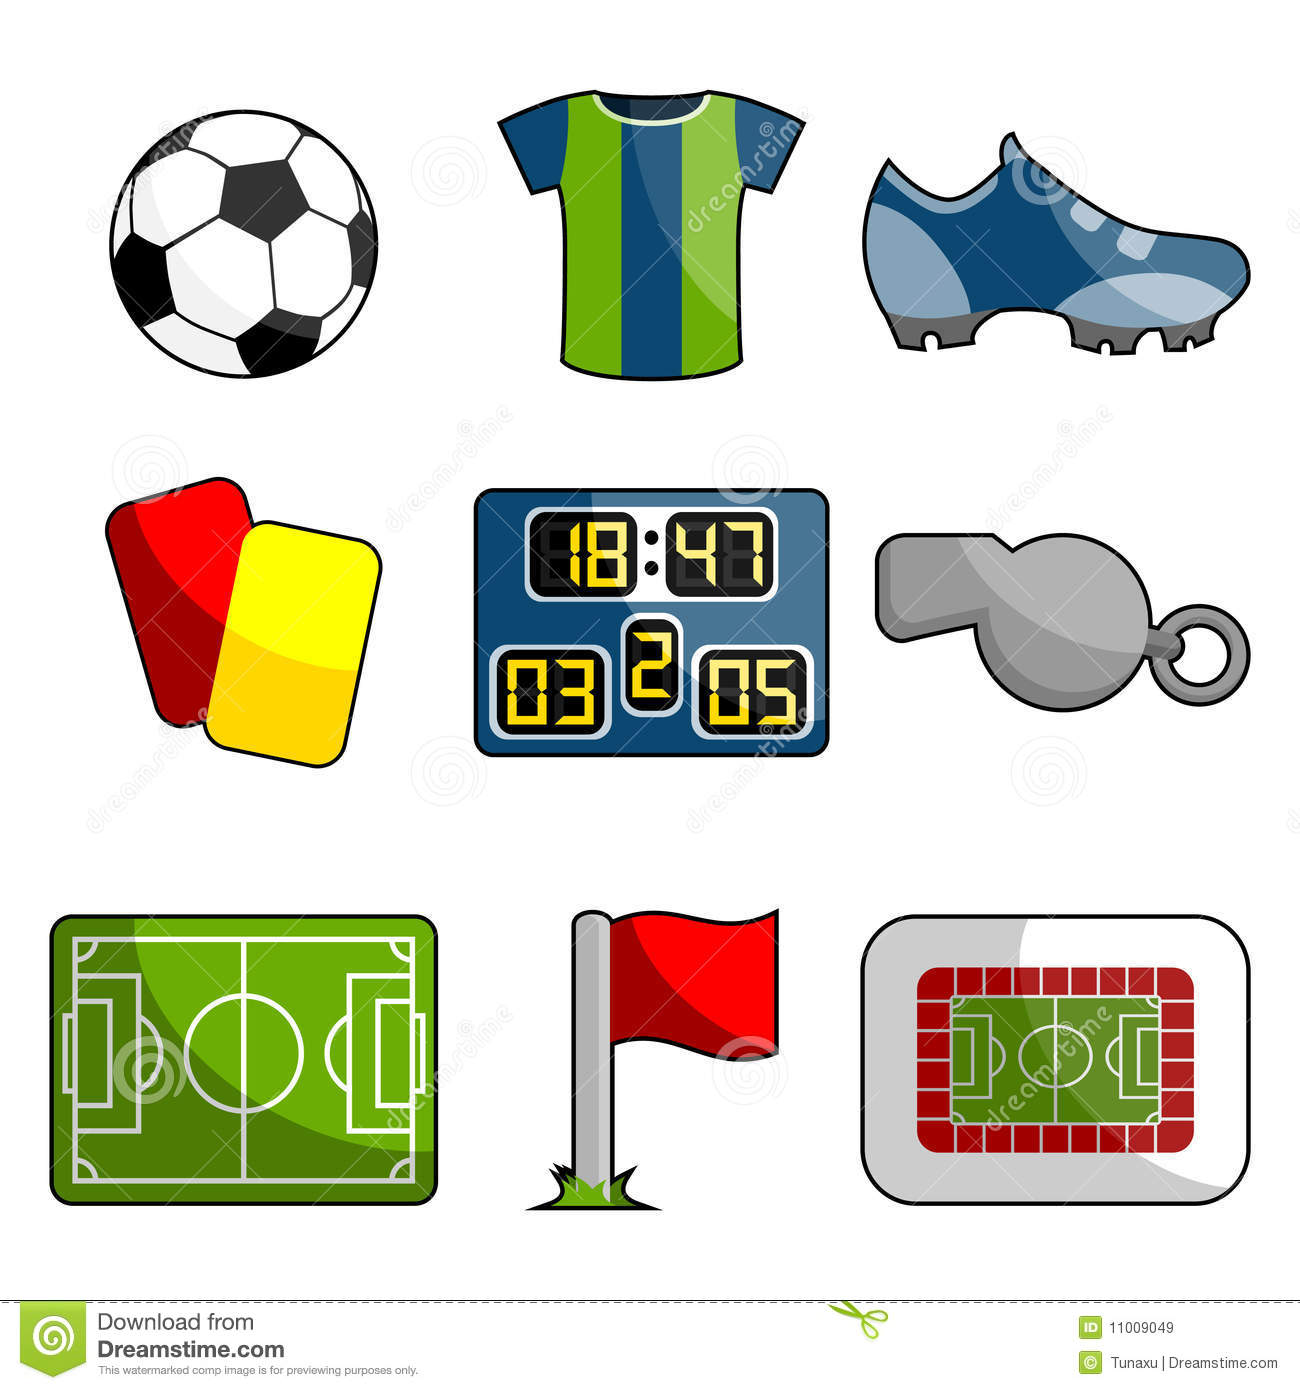 Download Soccer object icon set stock vector. Illustration of grass - 11009049